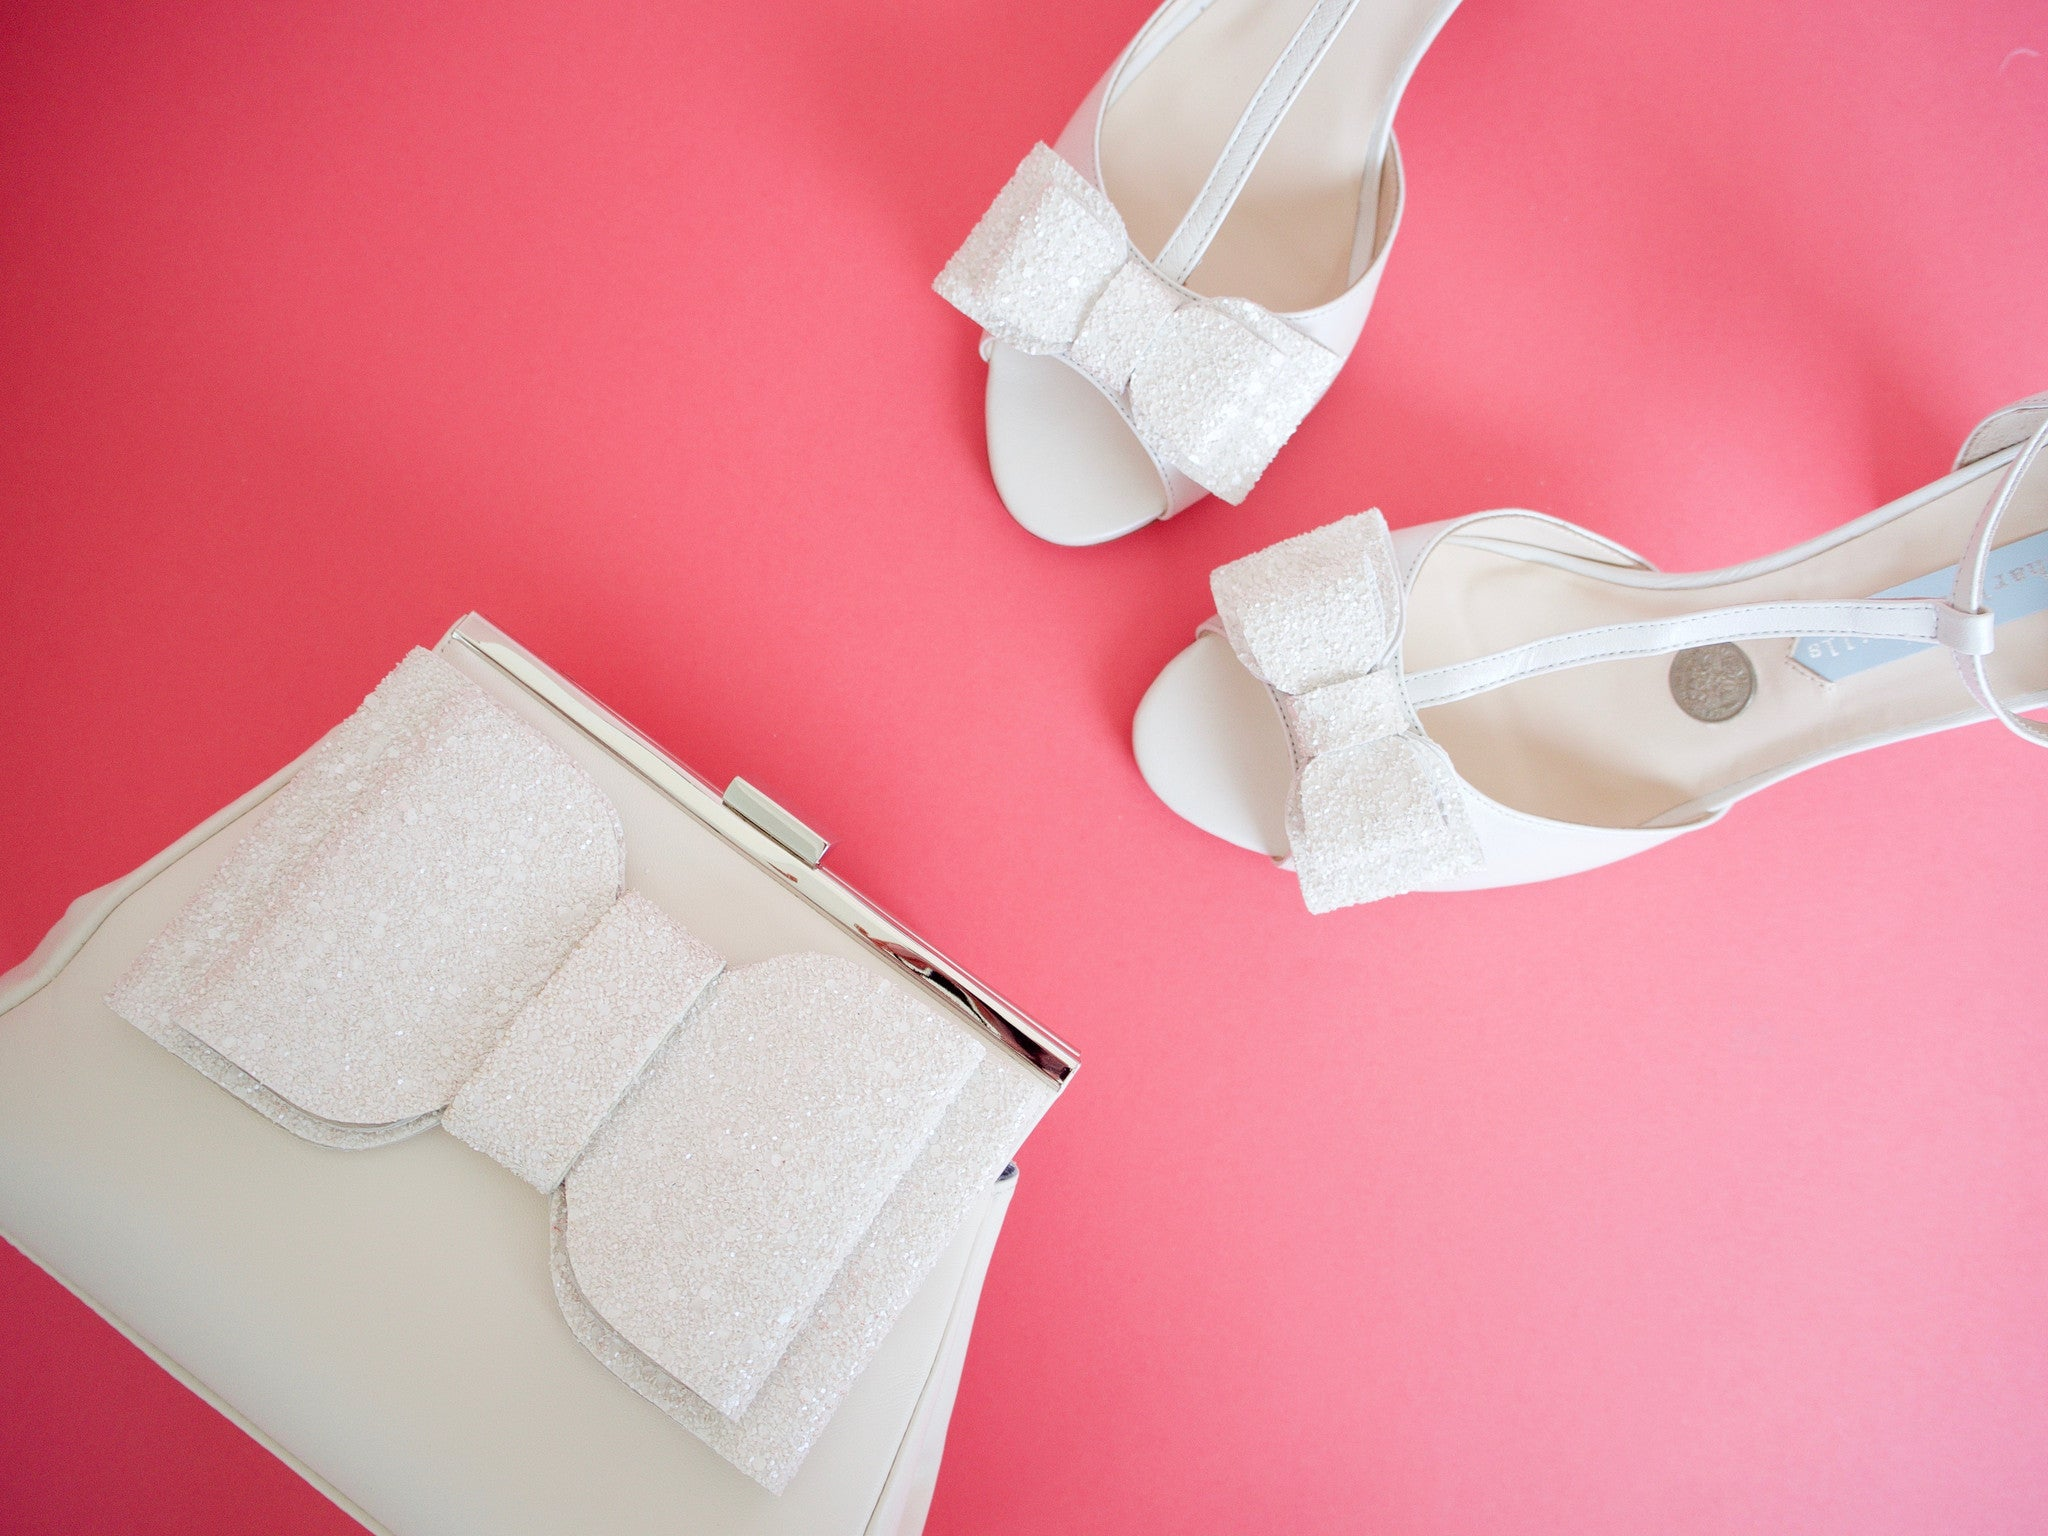 bag-shoe-wedding-match-charlottemills